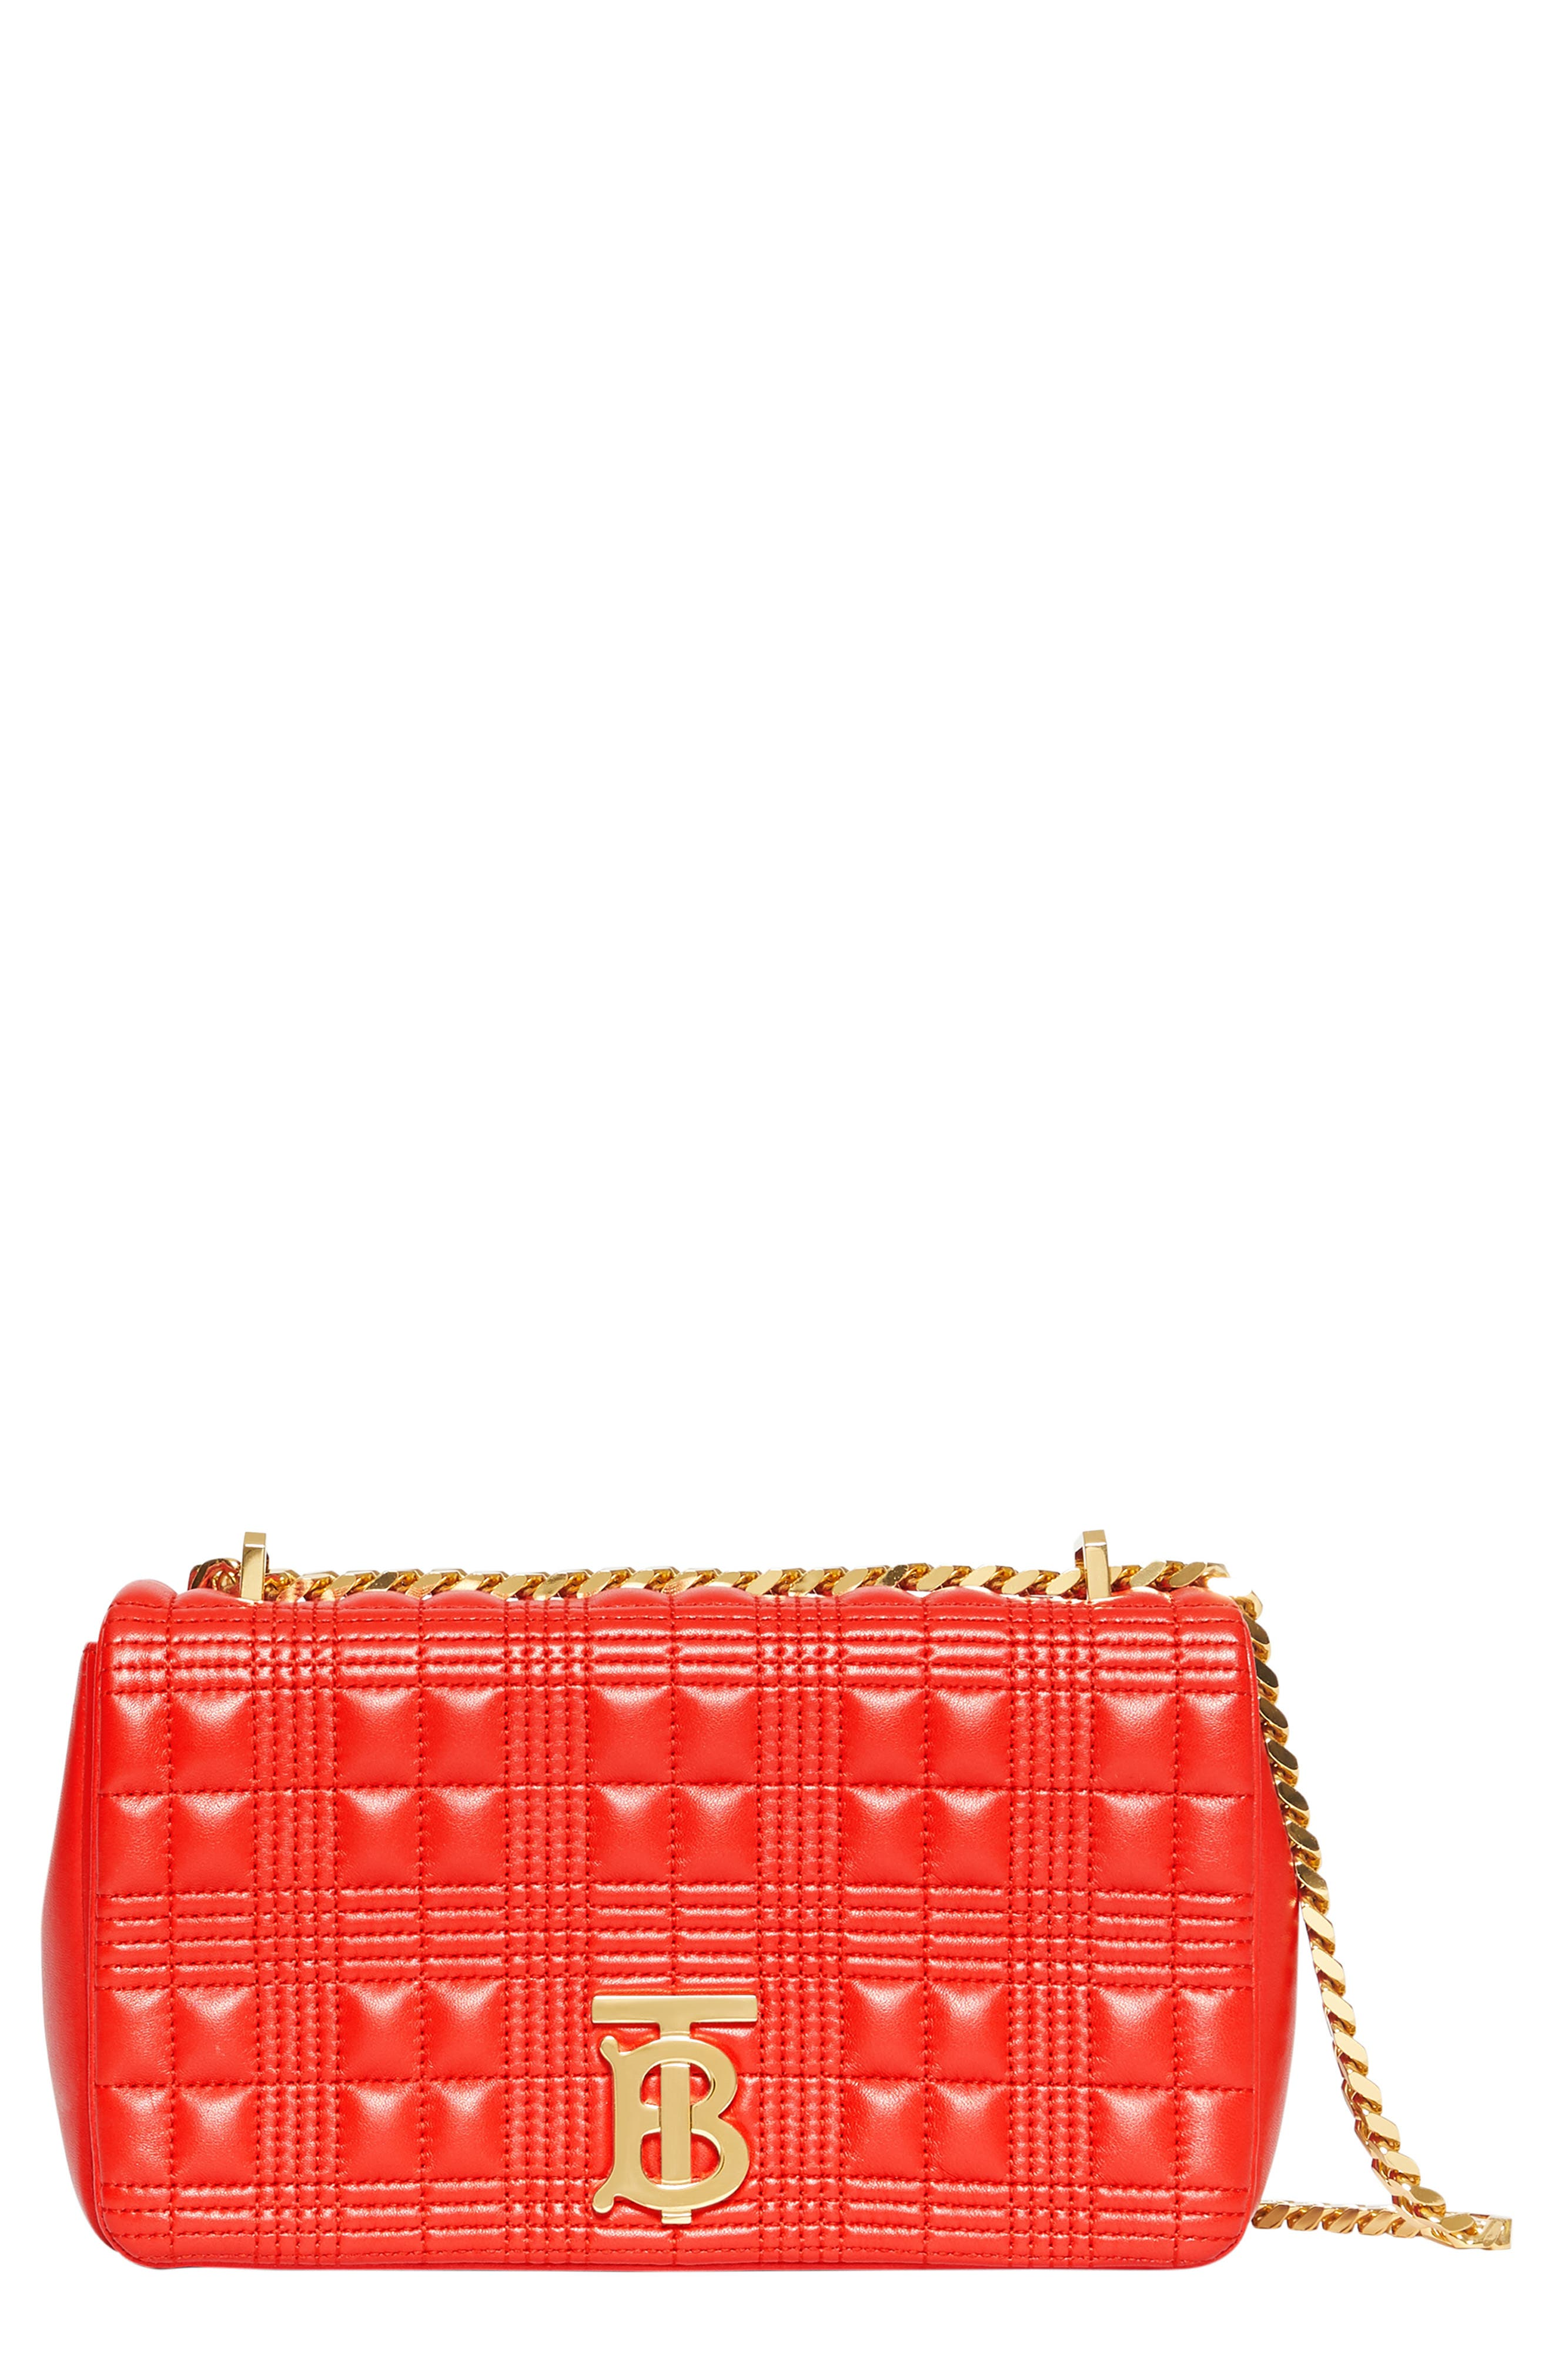 Burberry Small Lola Quilted Lambskin Bag   Nordstrom